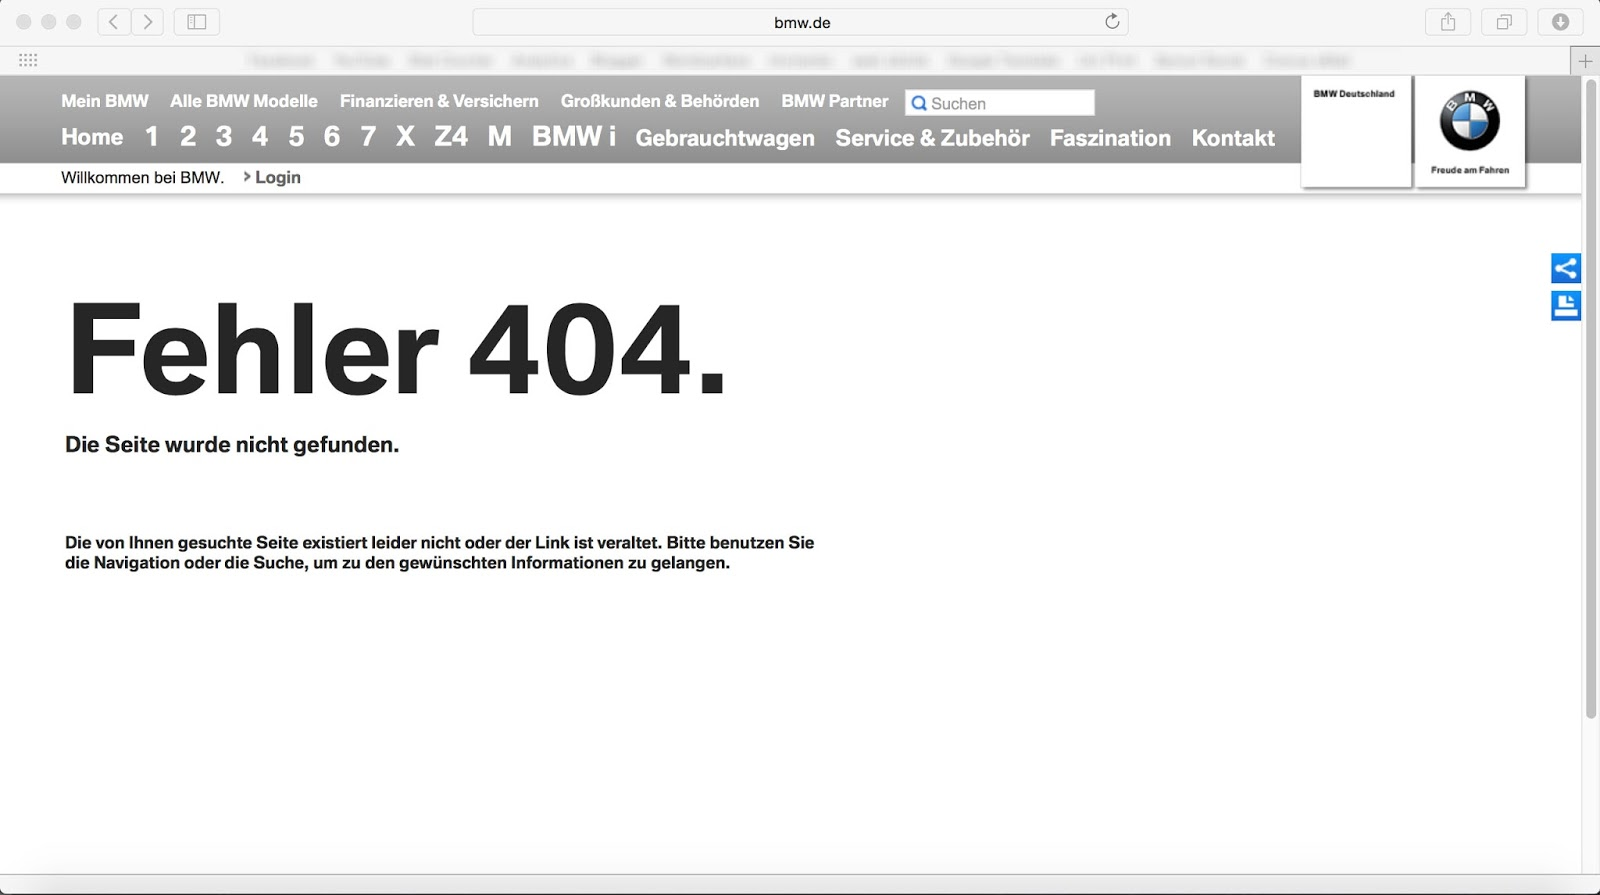 BMW German Website Crash | bmw.de